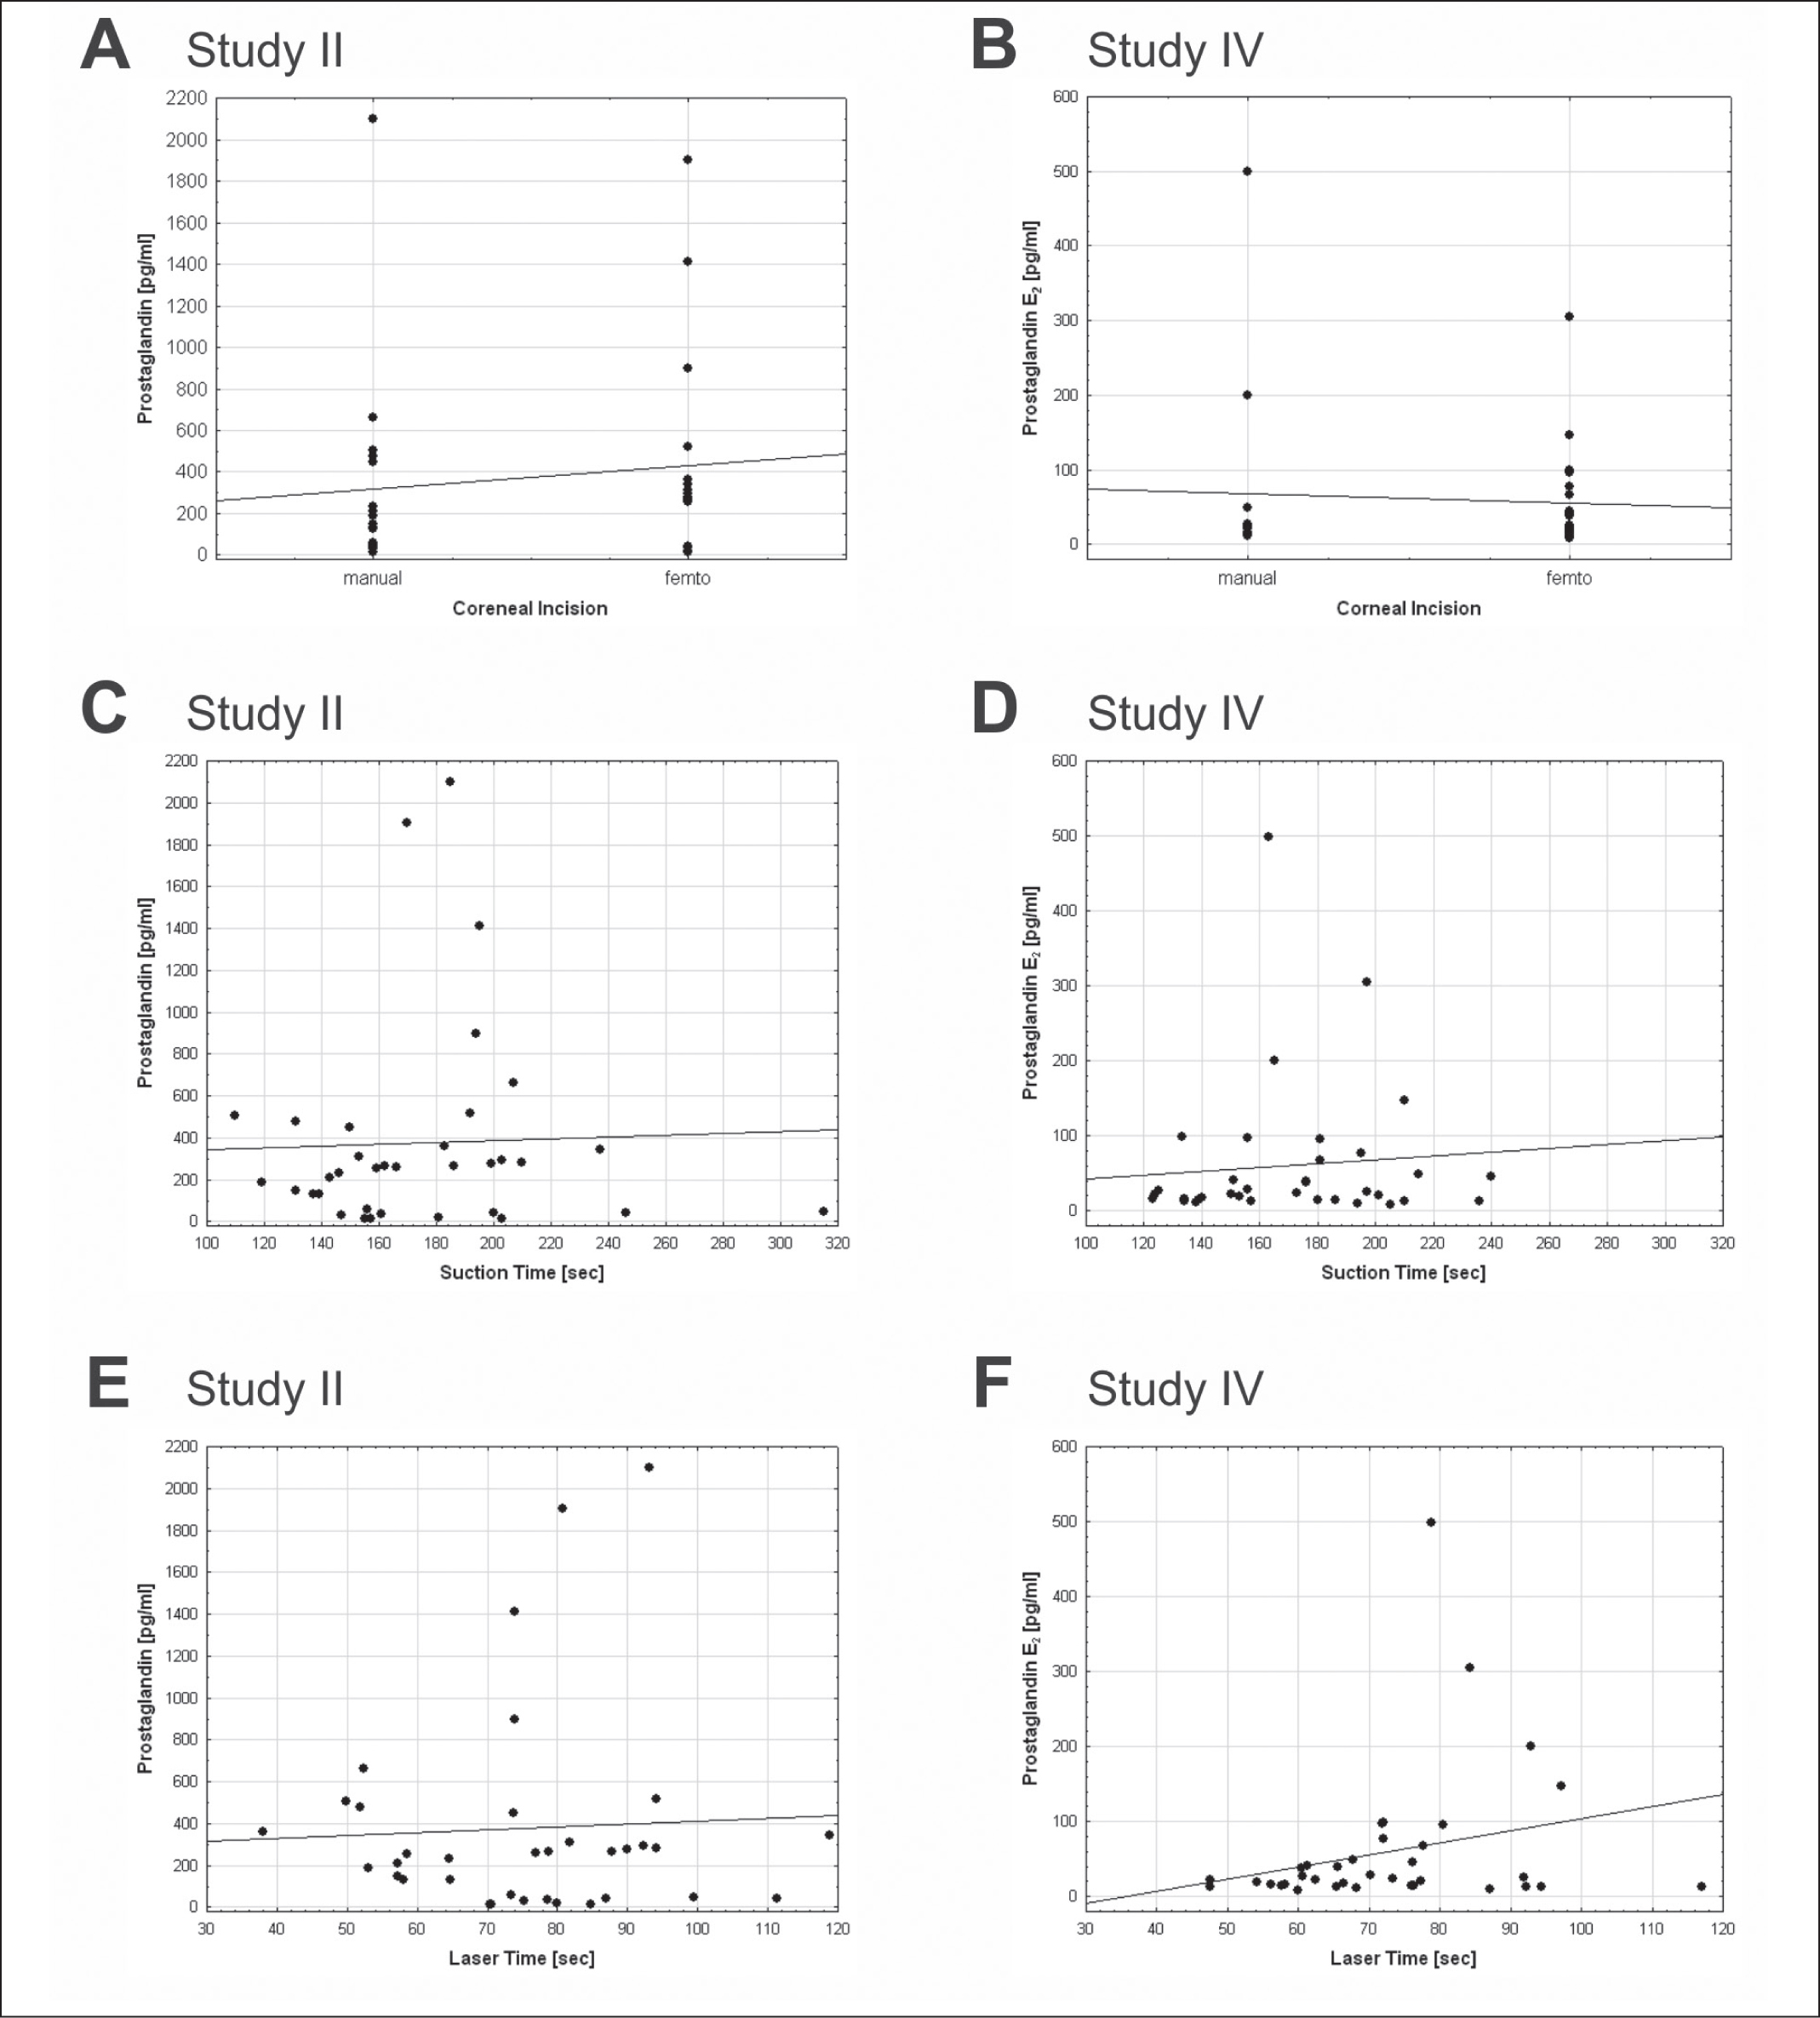 (A) Correlation of corneal incision procedures (manual or femtosecond laser-assisted) and prostaglandin in aqueous humor. Each dot represents one patient. No significant correlation was noted in study II (r = 0.11, P = .5). (B) Plot of corneal incision procedures versus prostaglandin E2 levels. No correlation was found between prostaglandin E2 and corneal incision in study IV (r = −0.07, P = .7). (C) Correlation of suction times in the femto group and prostaglandin levels. No significant correlation was noted in study II (r = 0.04, P = .8). (D) Scatterplot of suction times versus prostaglandin E2 levels. No correlation between prostaglandin E2 and suction time could be observed (r = −0.09, P = .6). (E) Correlation of laser times and prostaglandin levels. No correlation between prostaglandin and laser time could be observed (r = 0.04, P = .8). (F) No correlation was noted between individual laser times and prostaglandin E2 levels in study IV (r = 0.25, P = .1). Linear regressions are displayed as solid lines.